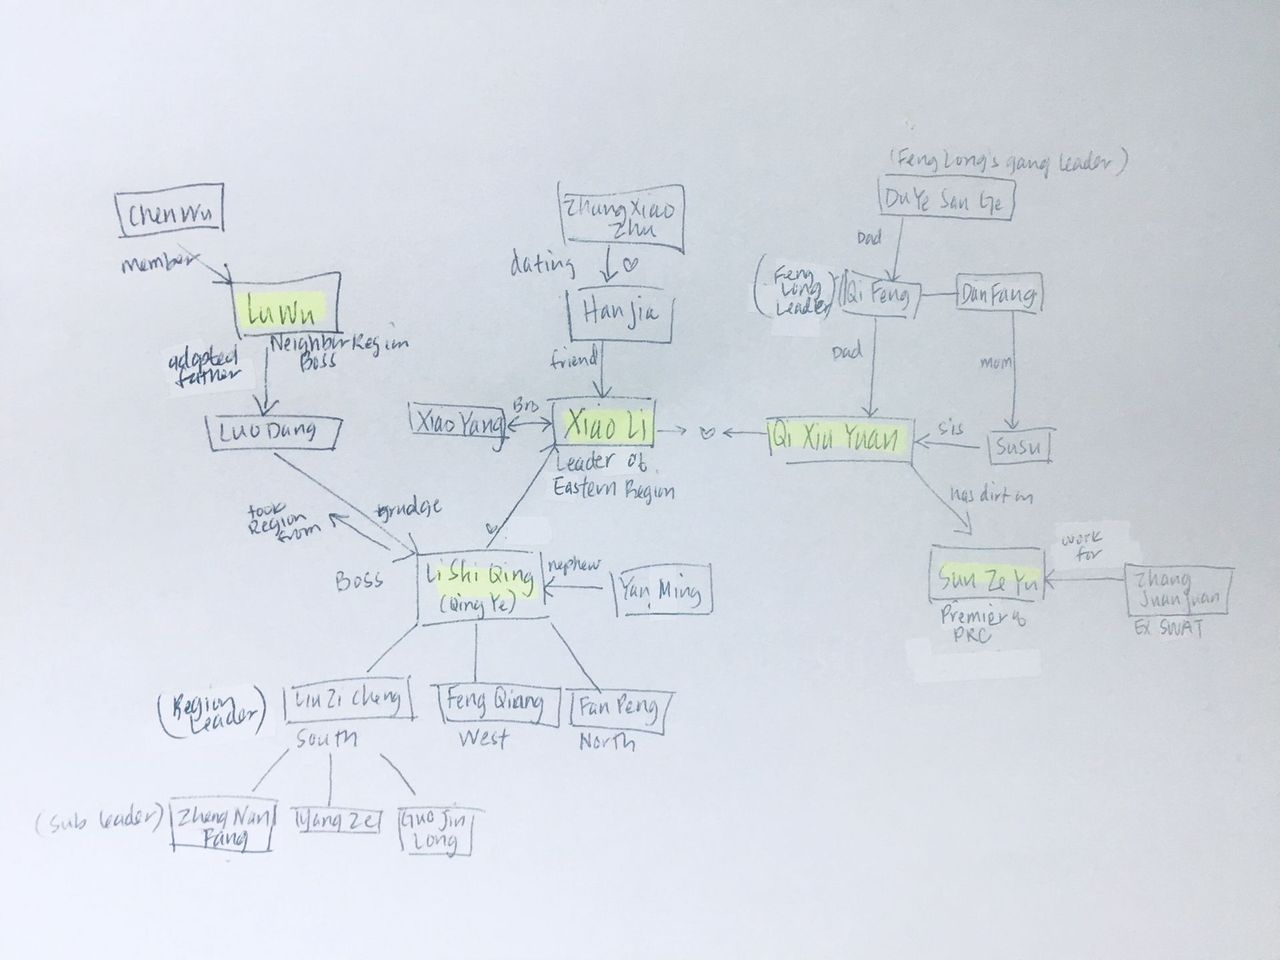 Well, things are going downhill as we get even close to the ending! Below is an awful relationship chart I quickly made hahahaha